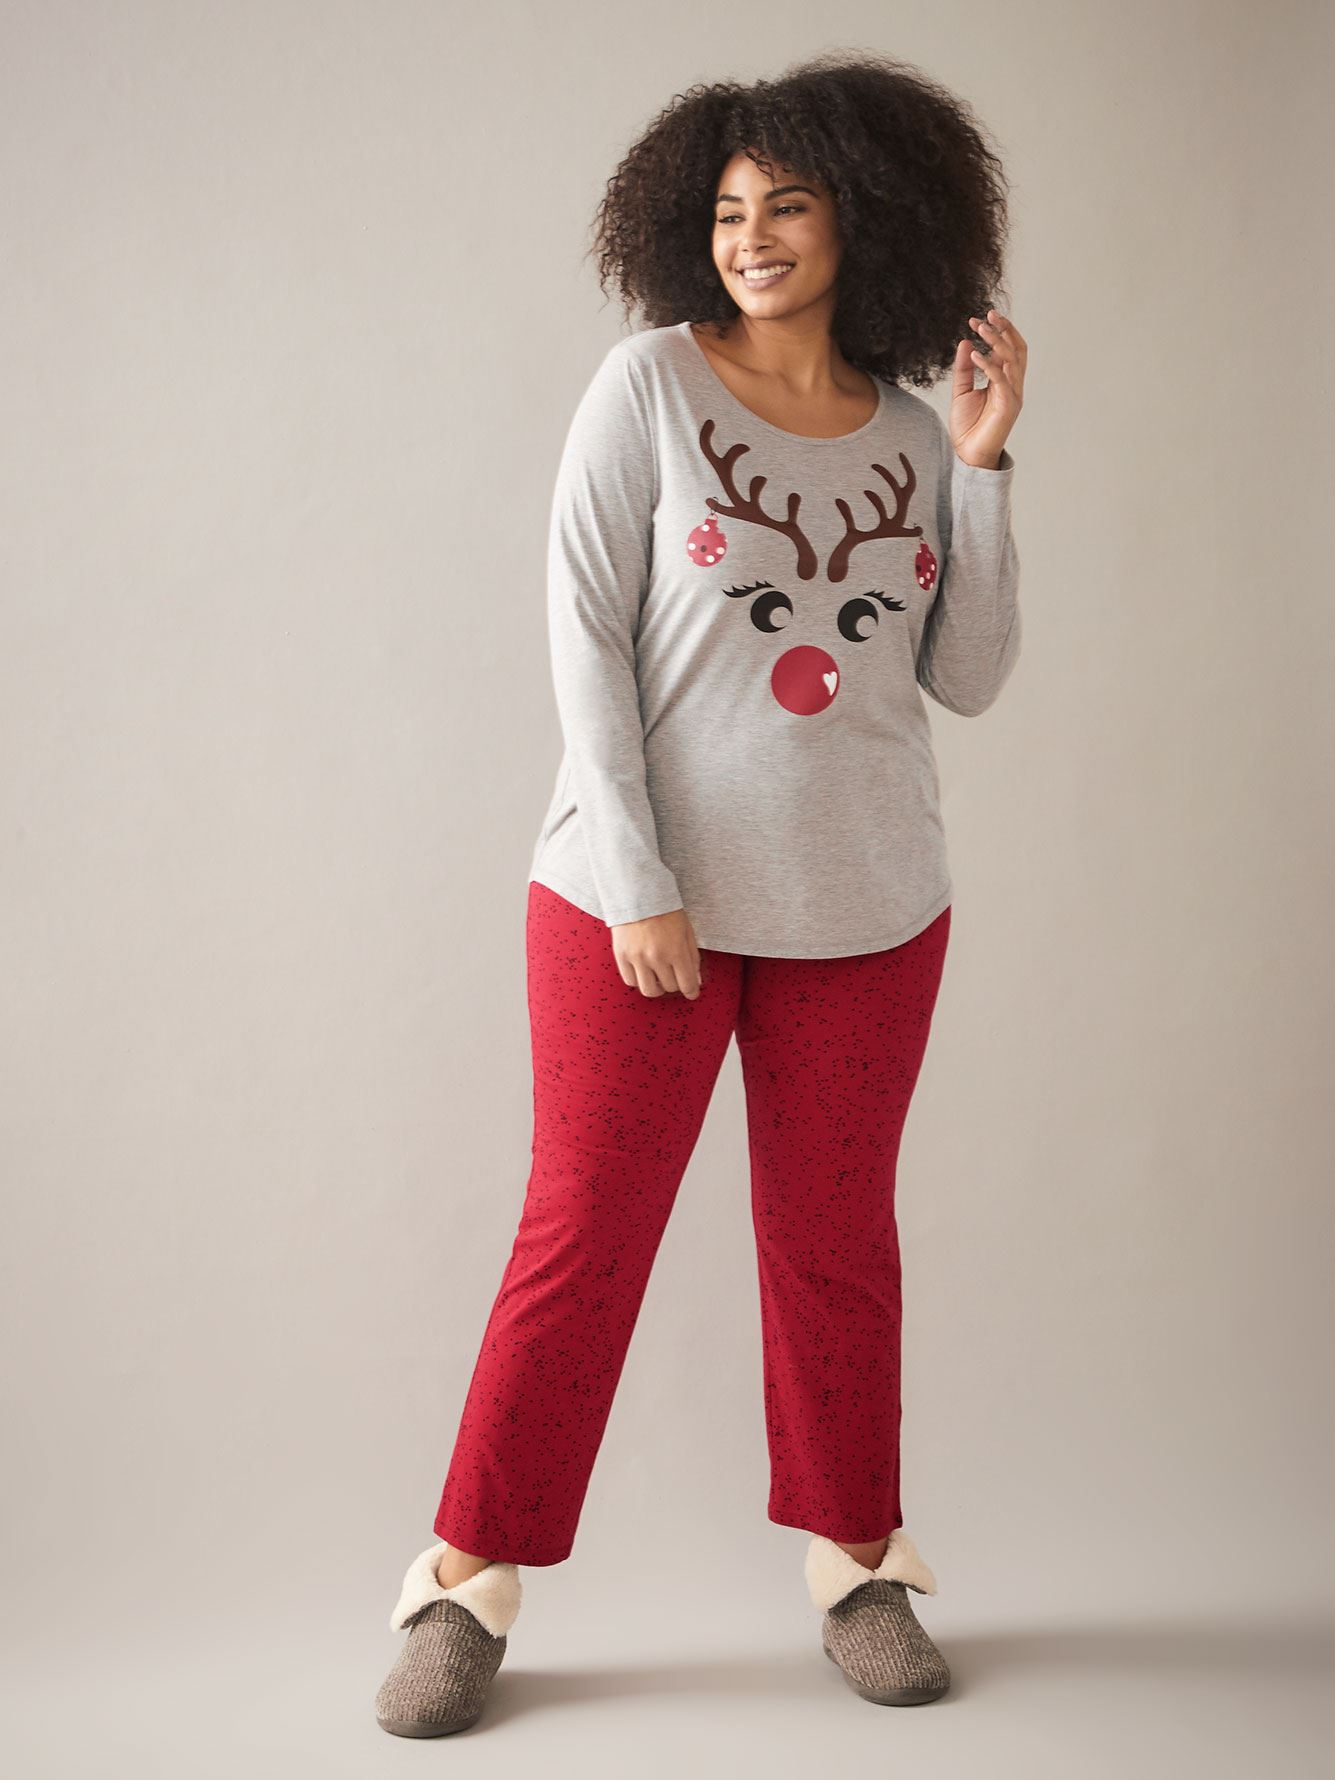 PJ Set with Reindeer Print Shirt - In Every Story